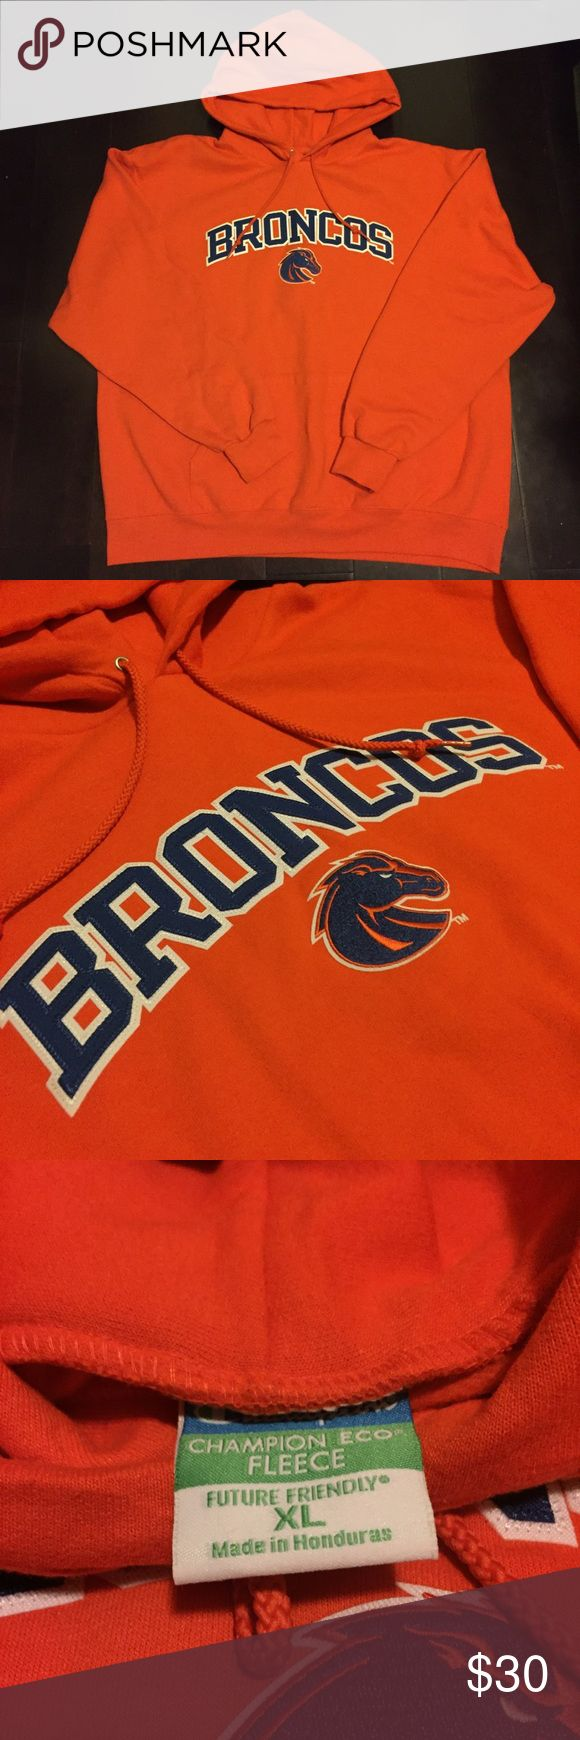 Denver Broncos Champion Pullover Champion brand Denver Broncos hoodie. Made with Champion's eco friendly fleece. Men's XL. only one available. Perfect condition. Champion Sweaters